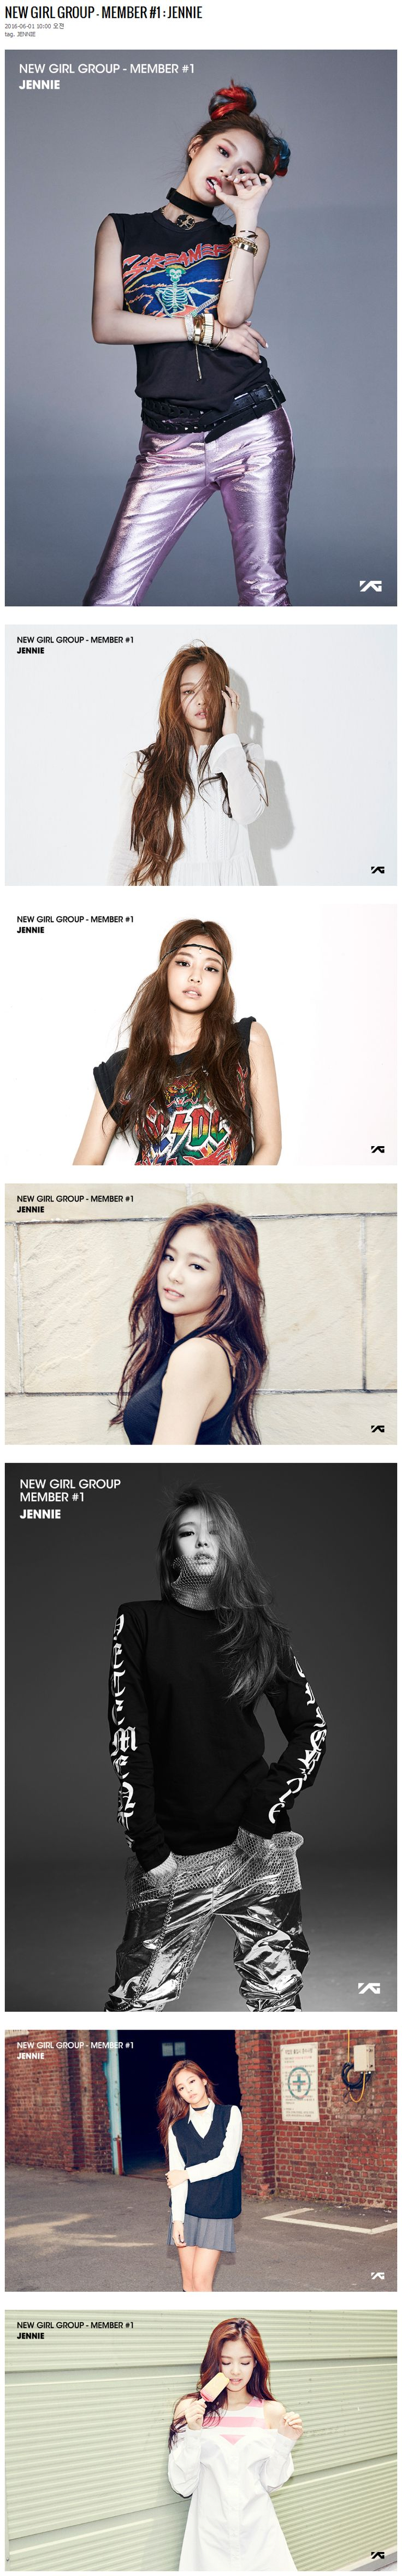 YG LIFE | NEW GIRL GROUP – MEMBER #1 : JENNIE http://www.yg-life.com/archives/75503 / https://www.pinterest.com/pin/214202526006133718/ #BLACKPINK #블랙핑크 #JENNIE